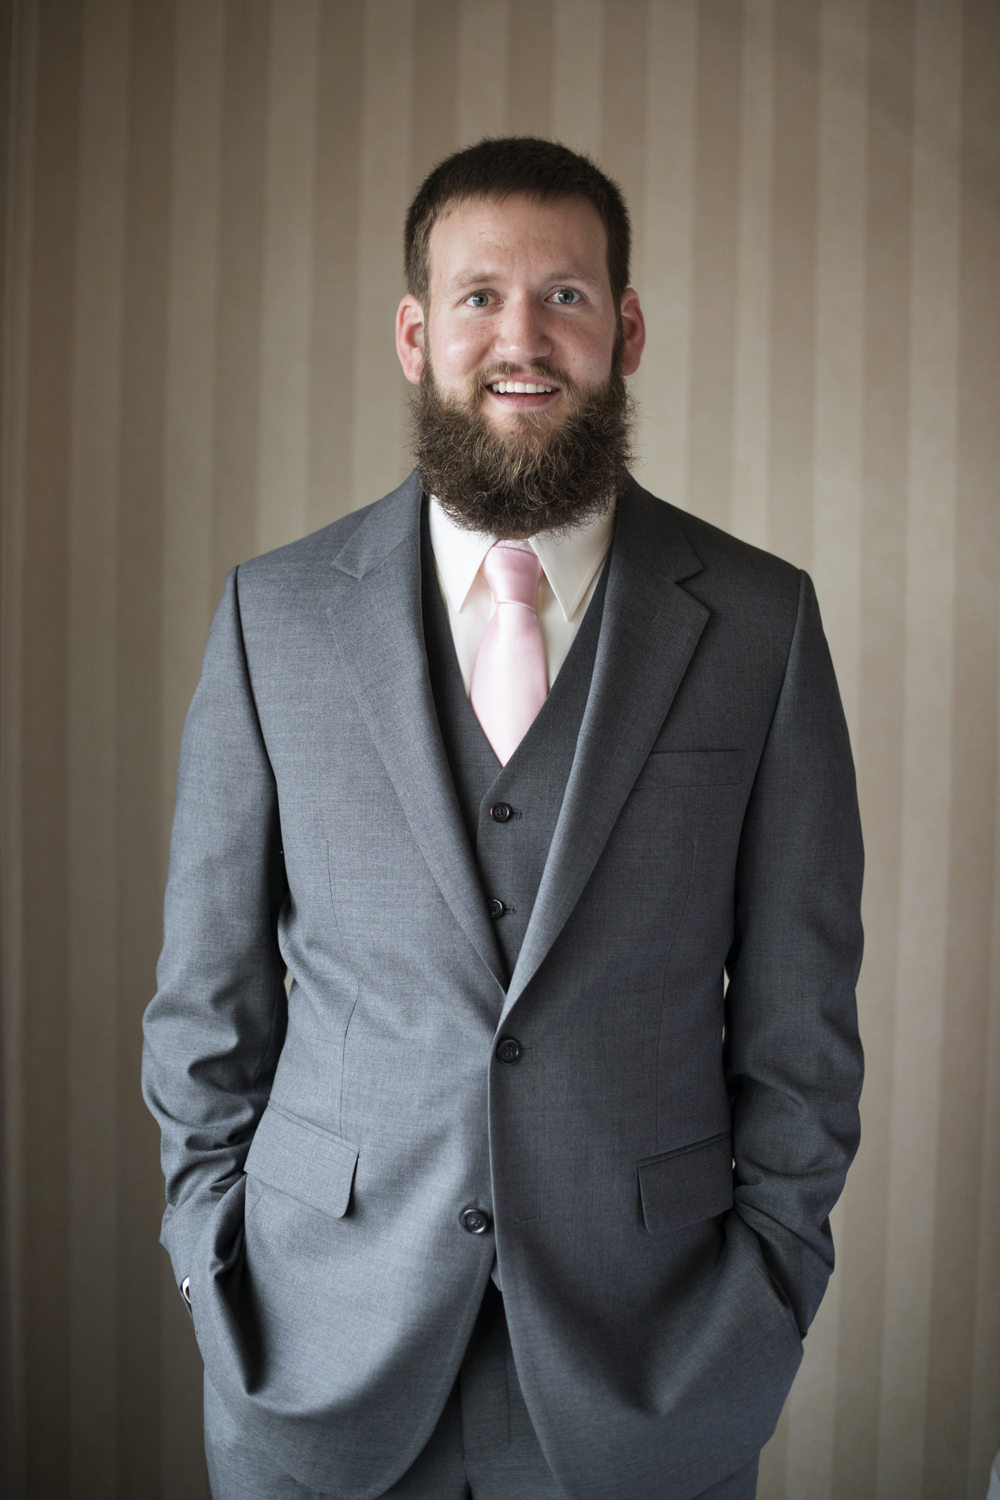 Groom wearing gray and pink for his December wedding